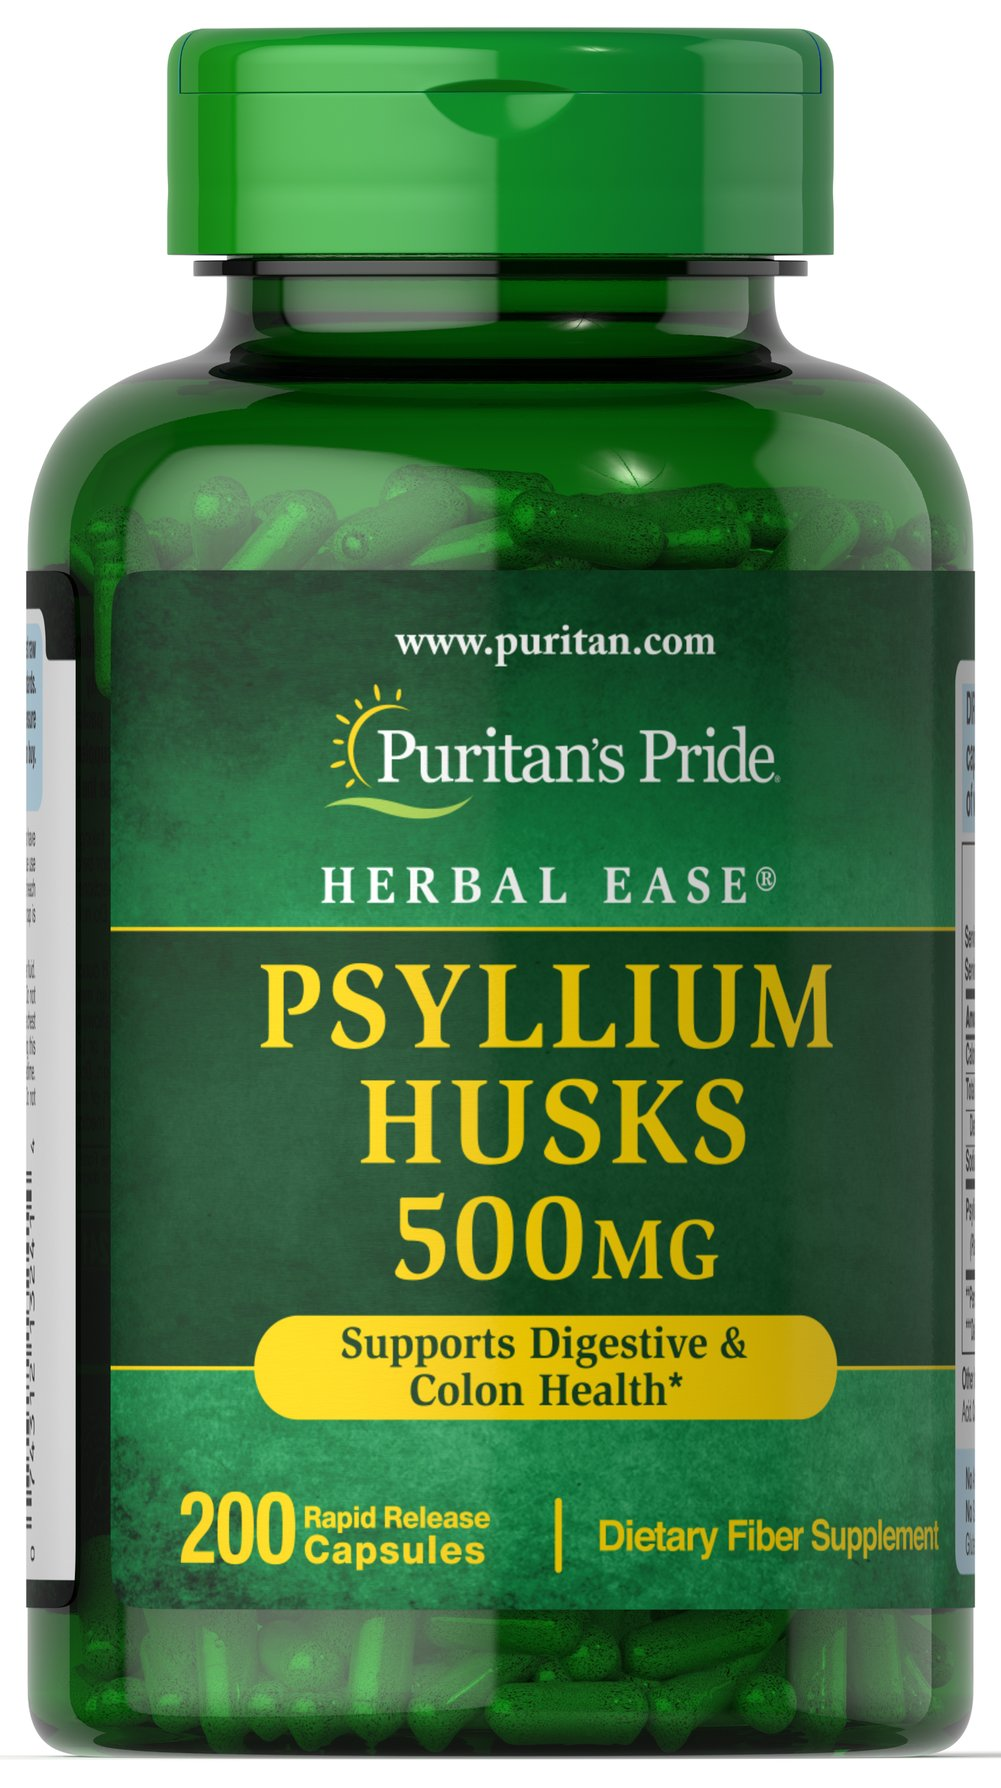 Psyllium Husks 500 mg <p>Psyllium Husks are a source of soluble fiber and a healthy addition to your diet. Our high-quality formula provides 1,000 mg of Psyllium seed husk per serving to support digestive and colon health.**</p>  200 Capsules 500 mg $16.99